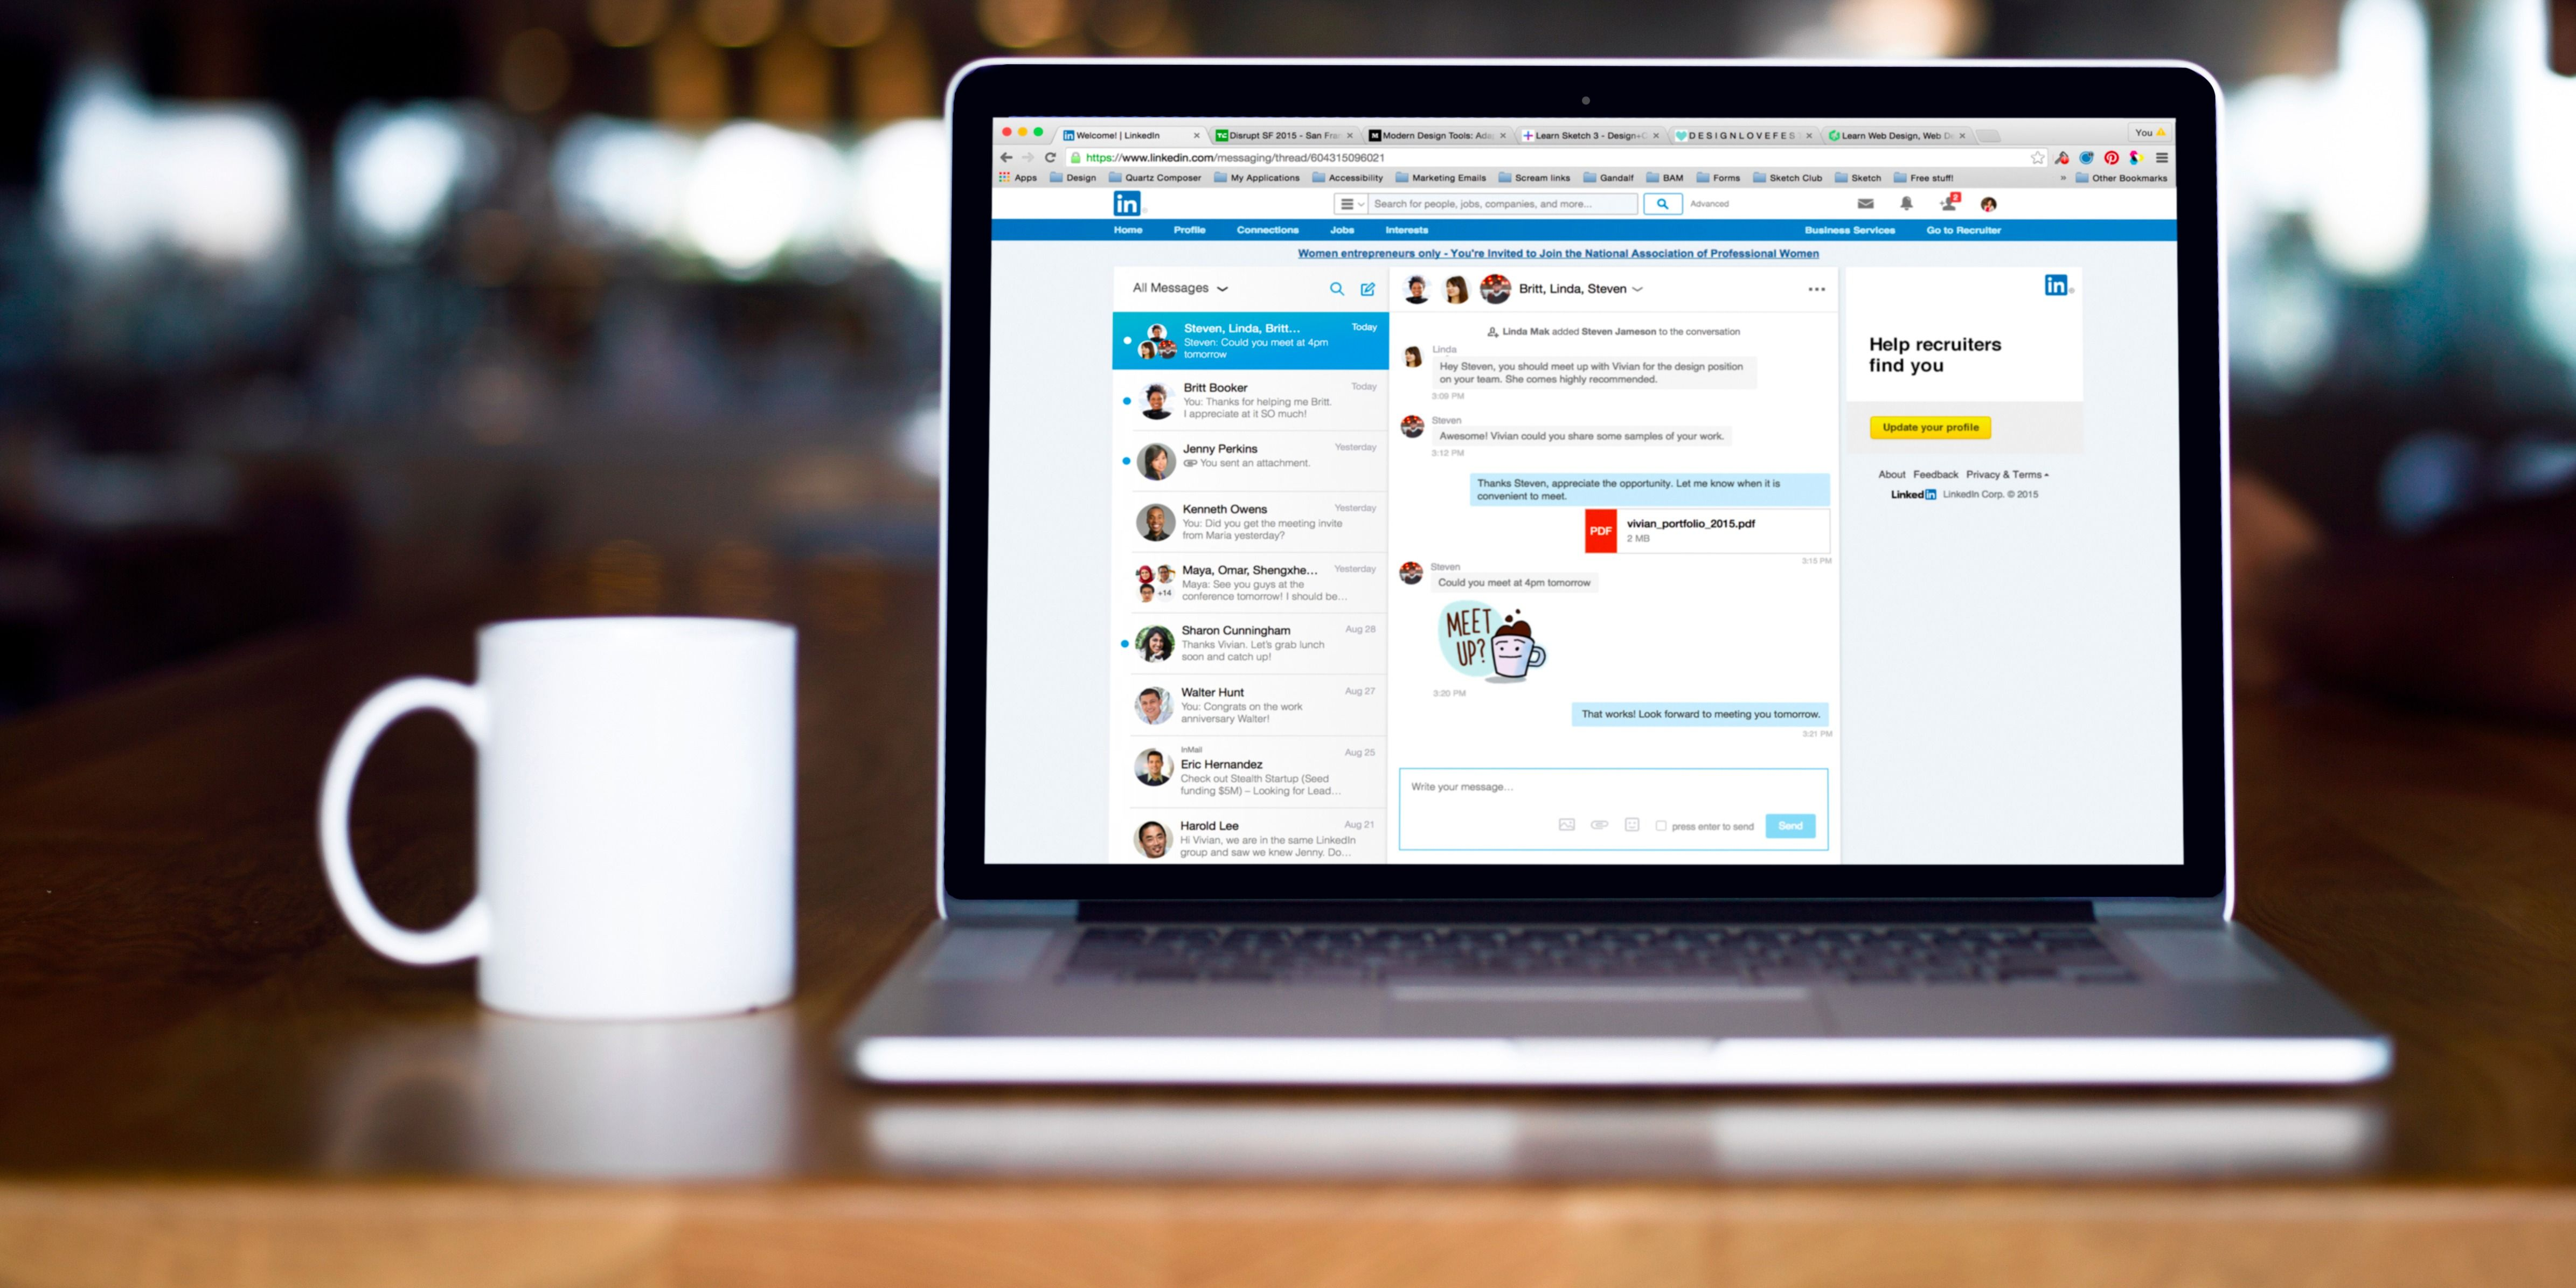 LinkedIn just fixed one of its most annoying problems